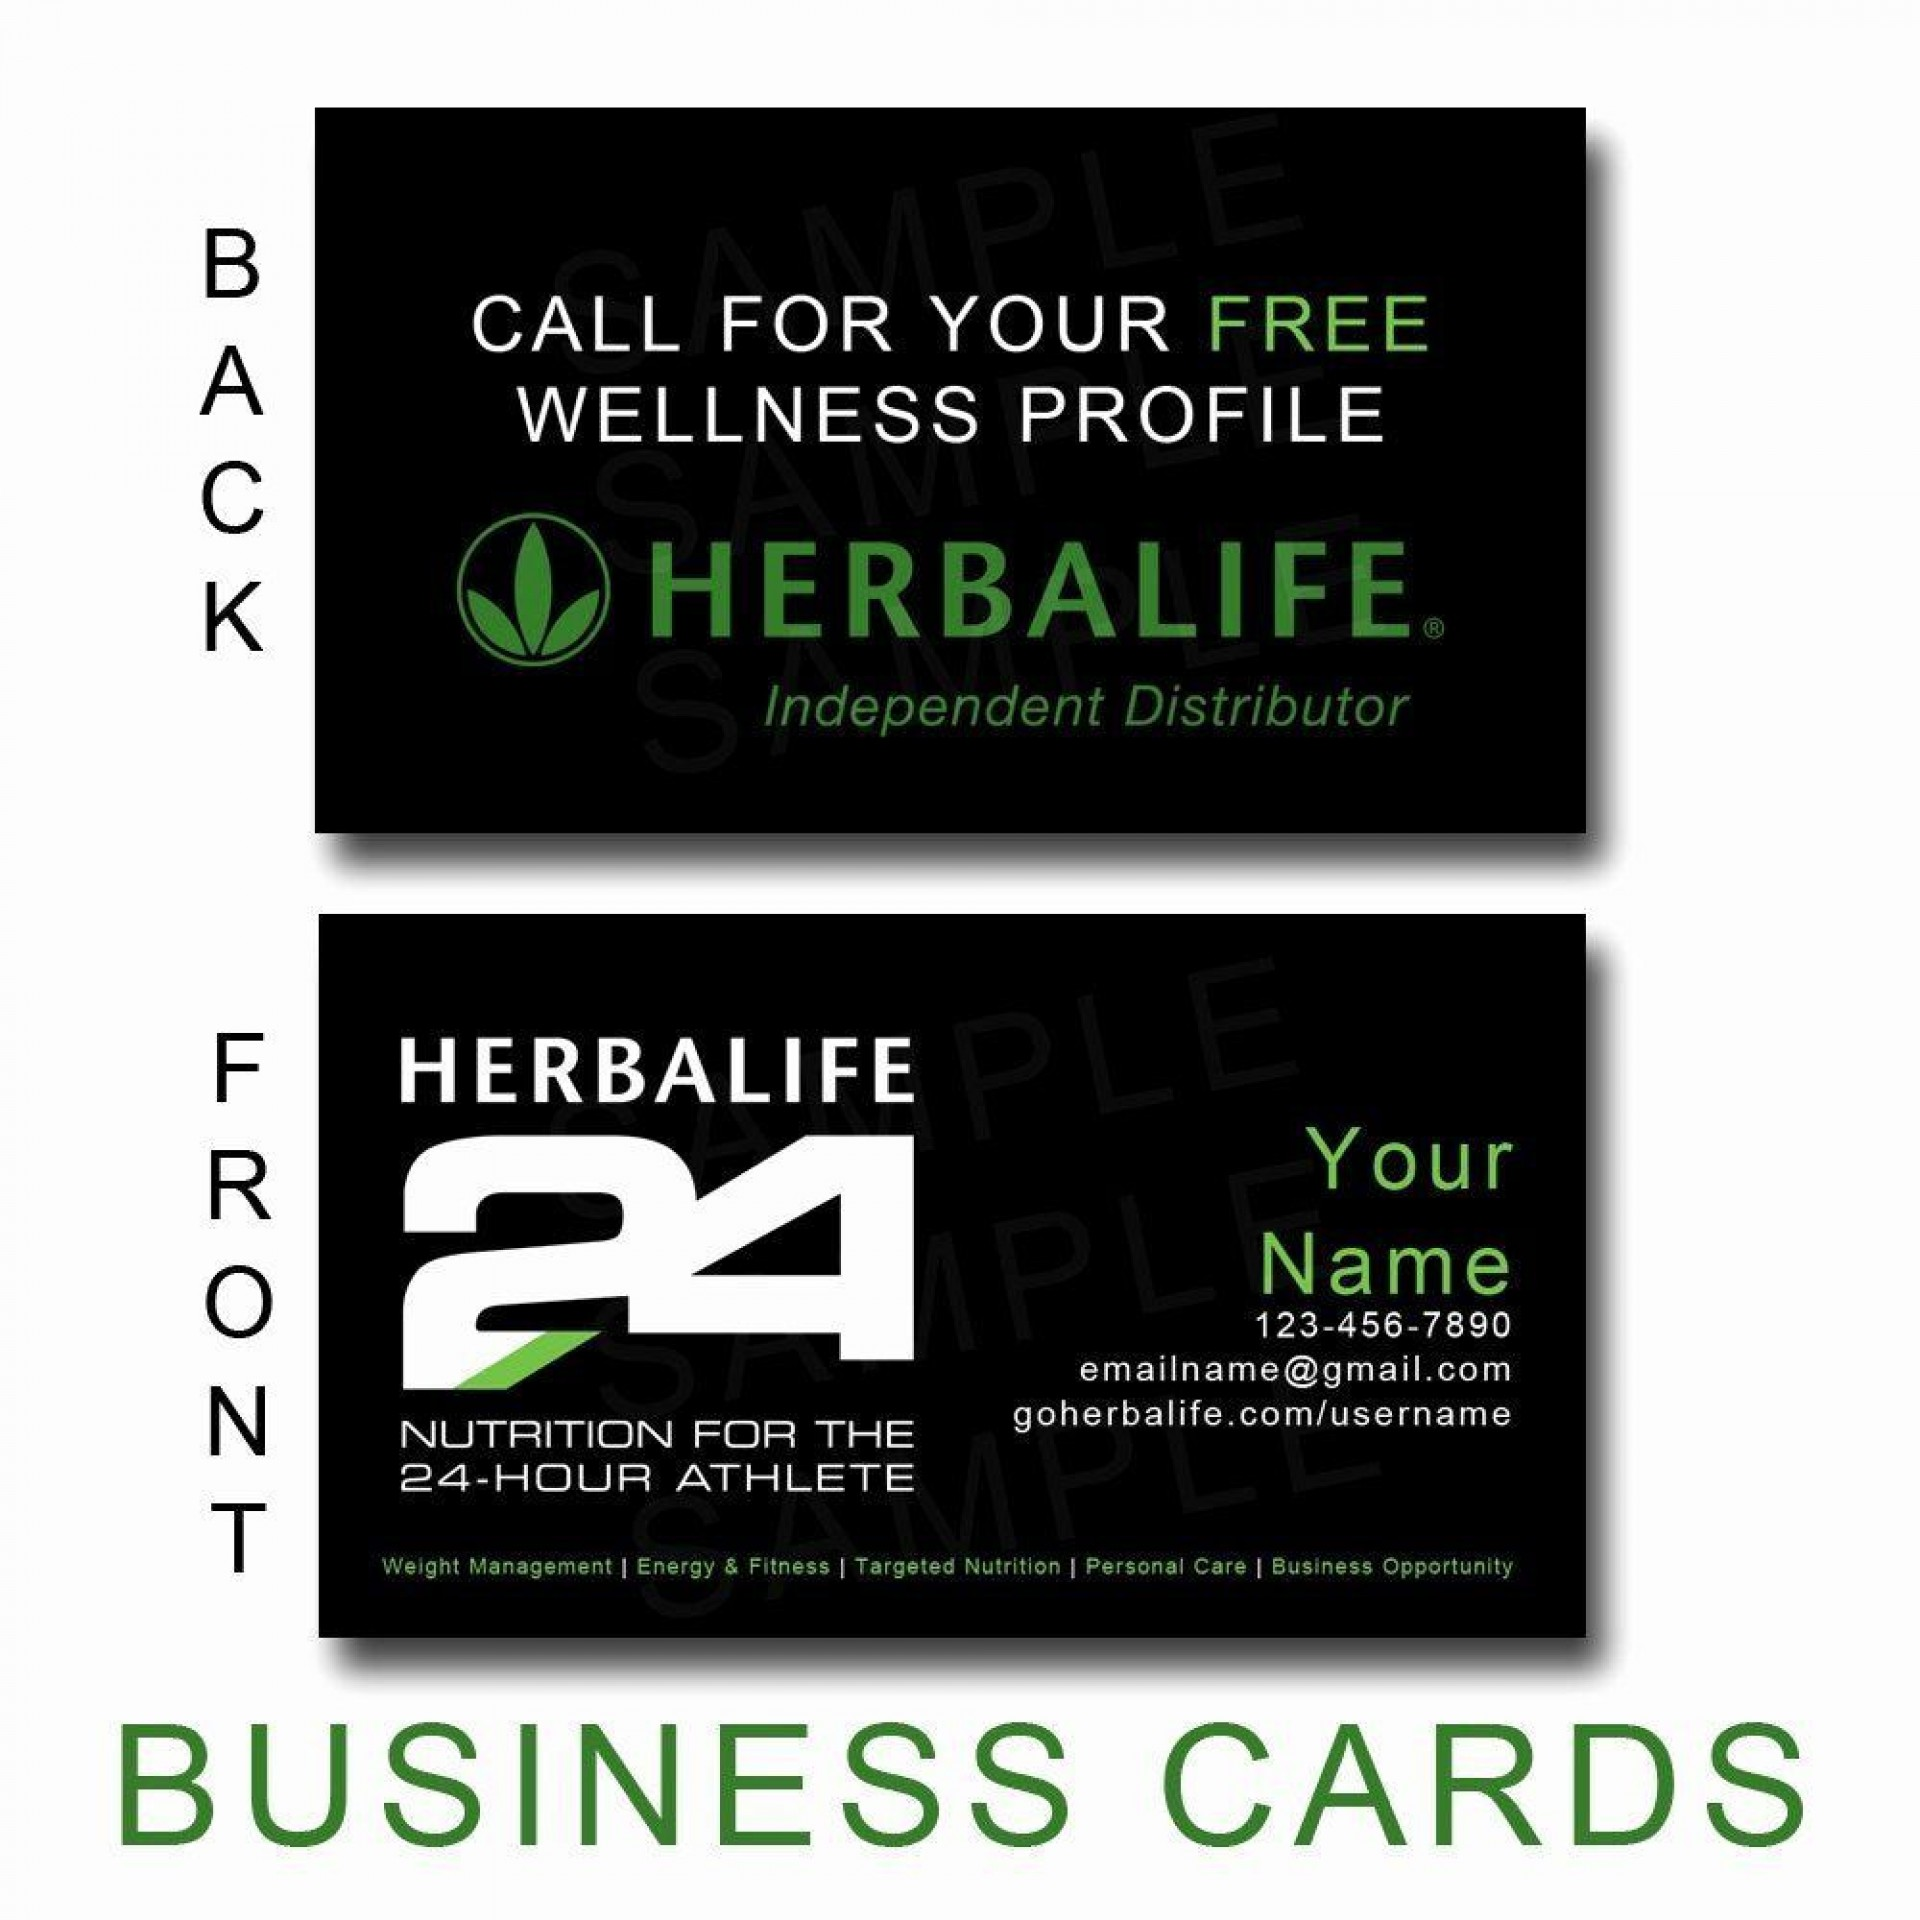 008 Frightening Herbalife Busines Card Template Inspiration  Download Free1920